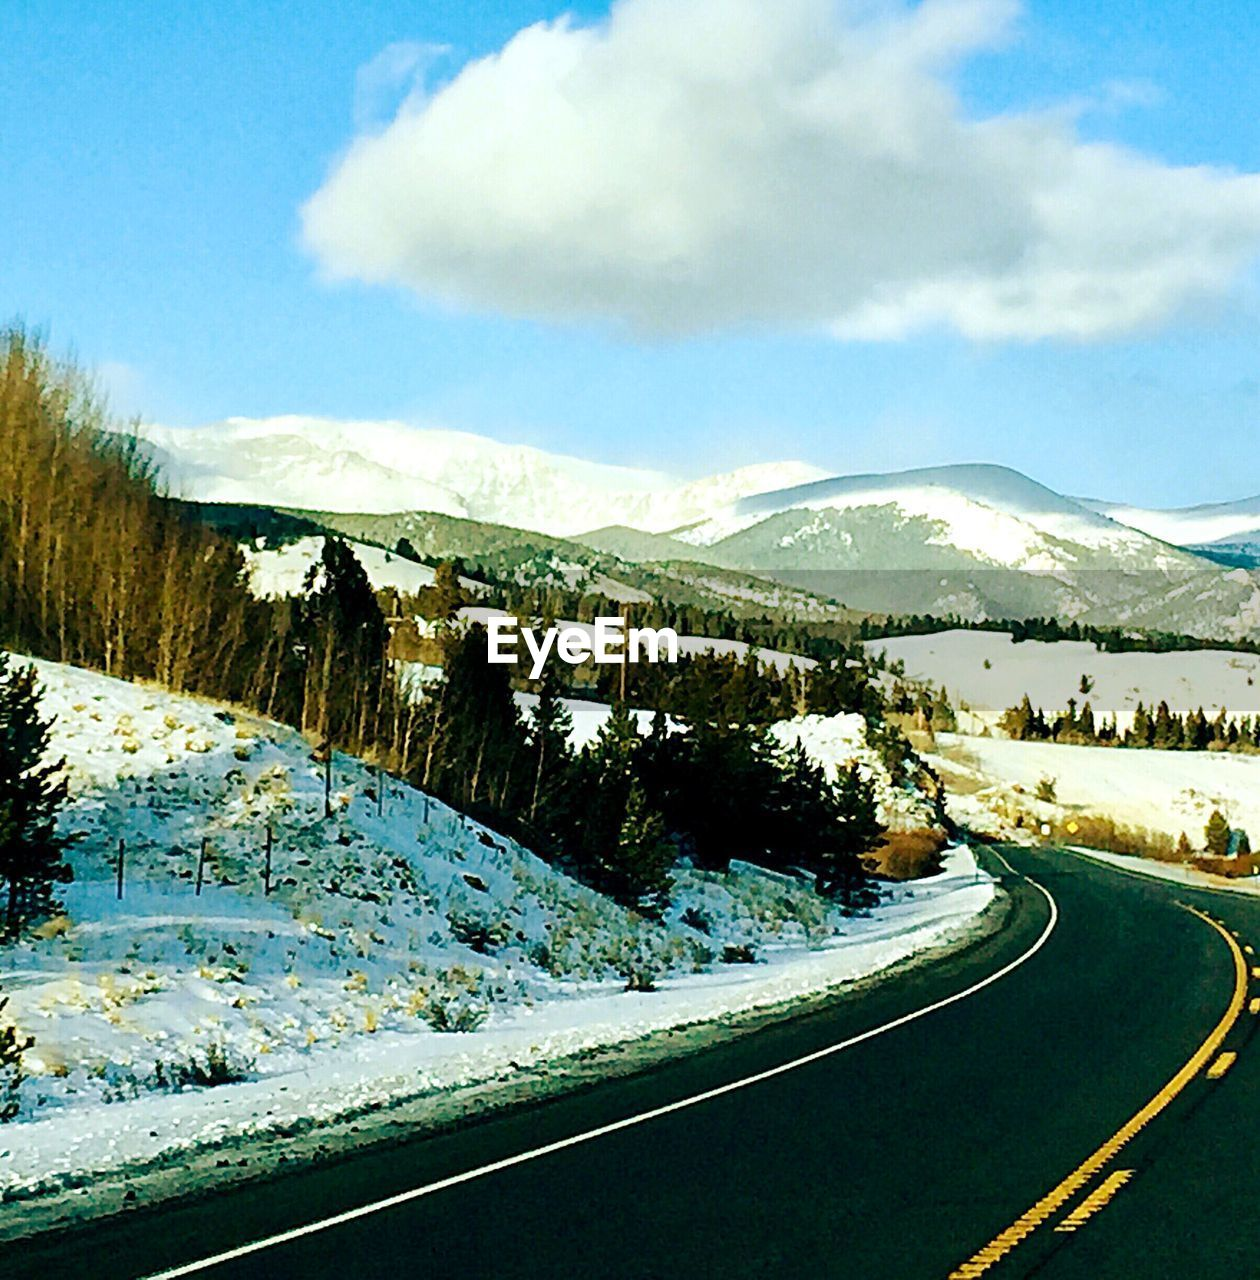 mountain, sky, road, cloud - sky, winter, snow, scenics - nature, transportation, beauty in nature, cold temperature, day, nature, tranquility, tranquil scene, mountain range, no people, environment, non-urban scene, tree, winding road, snowcapped mountain, outdoors